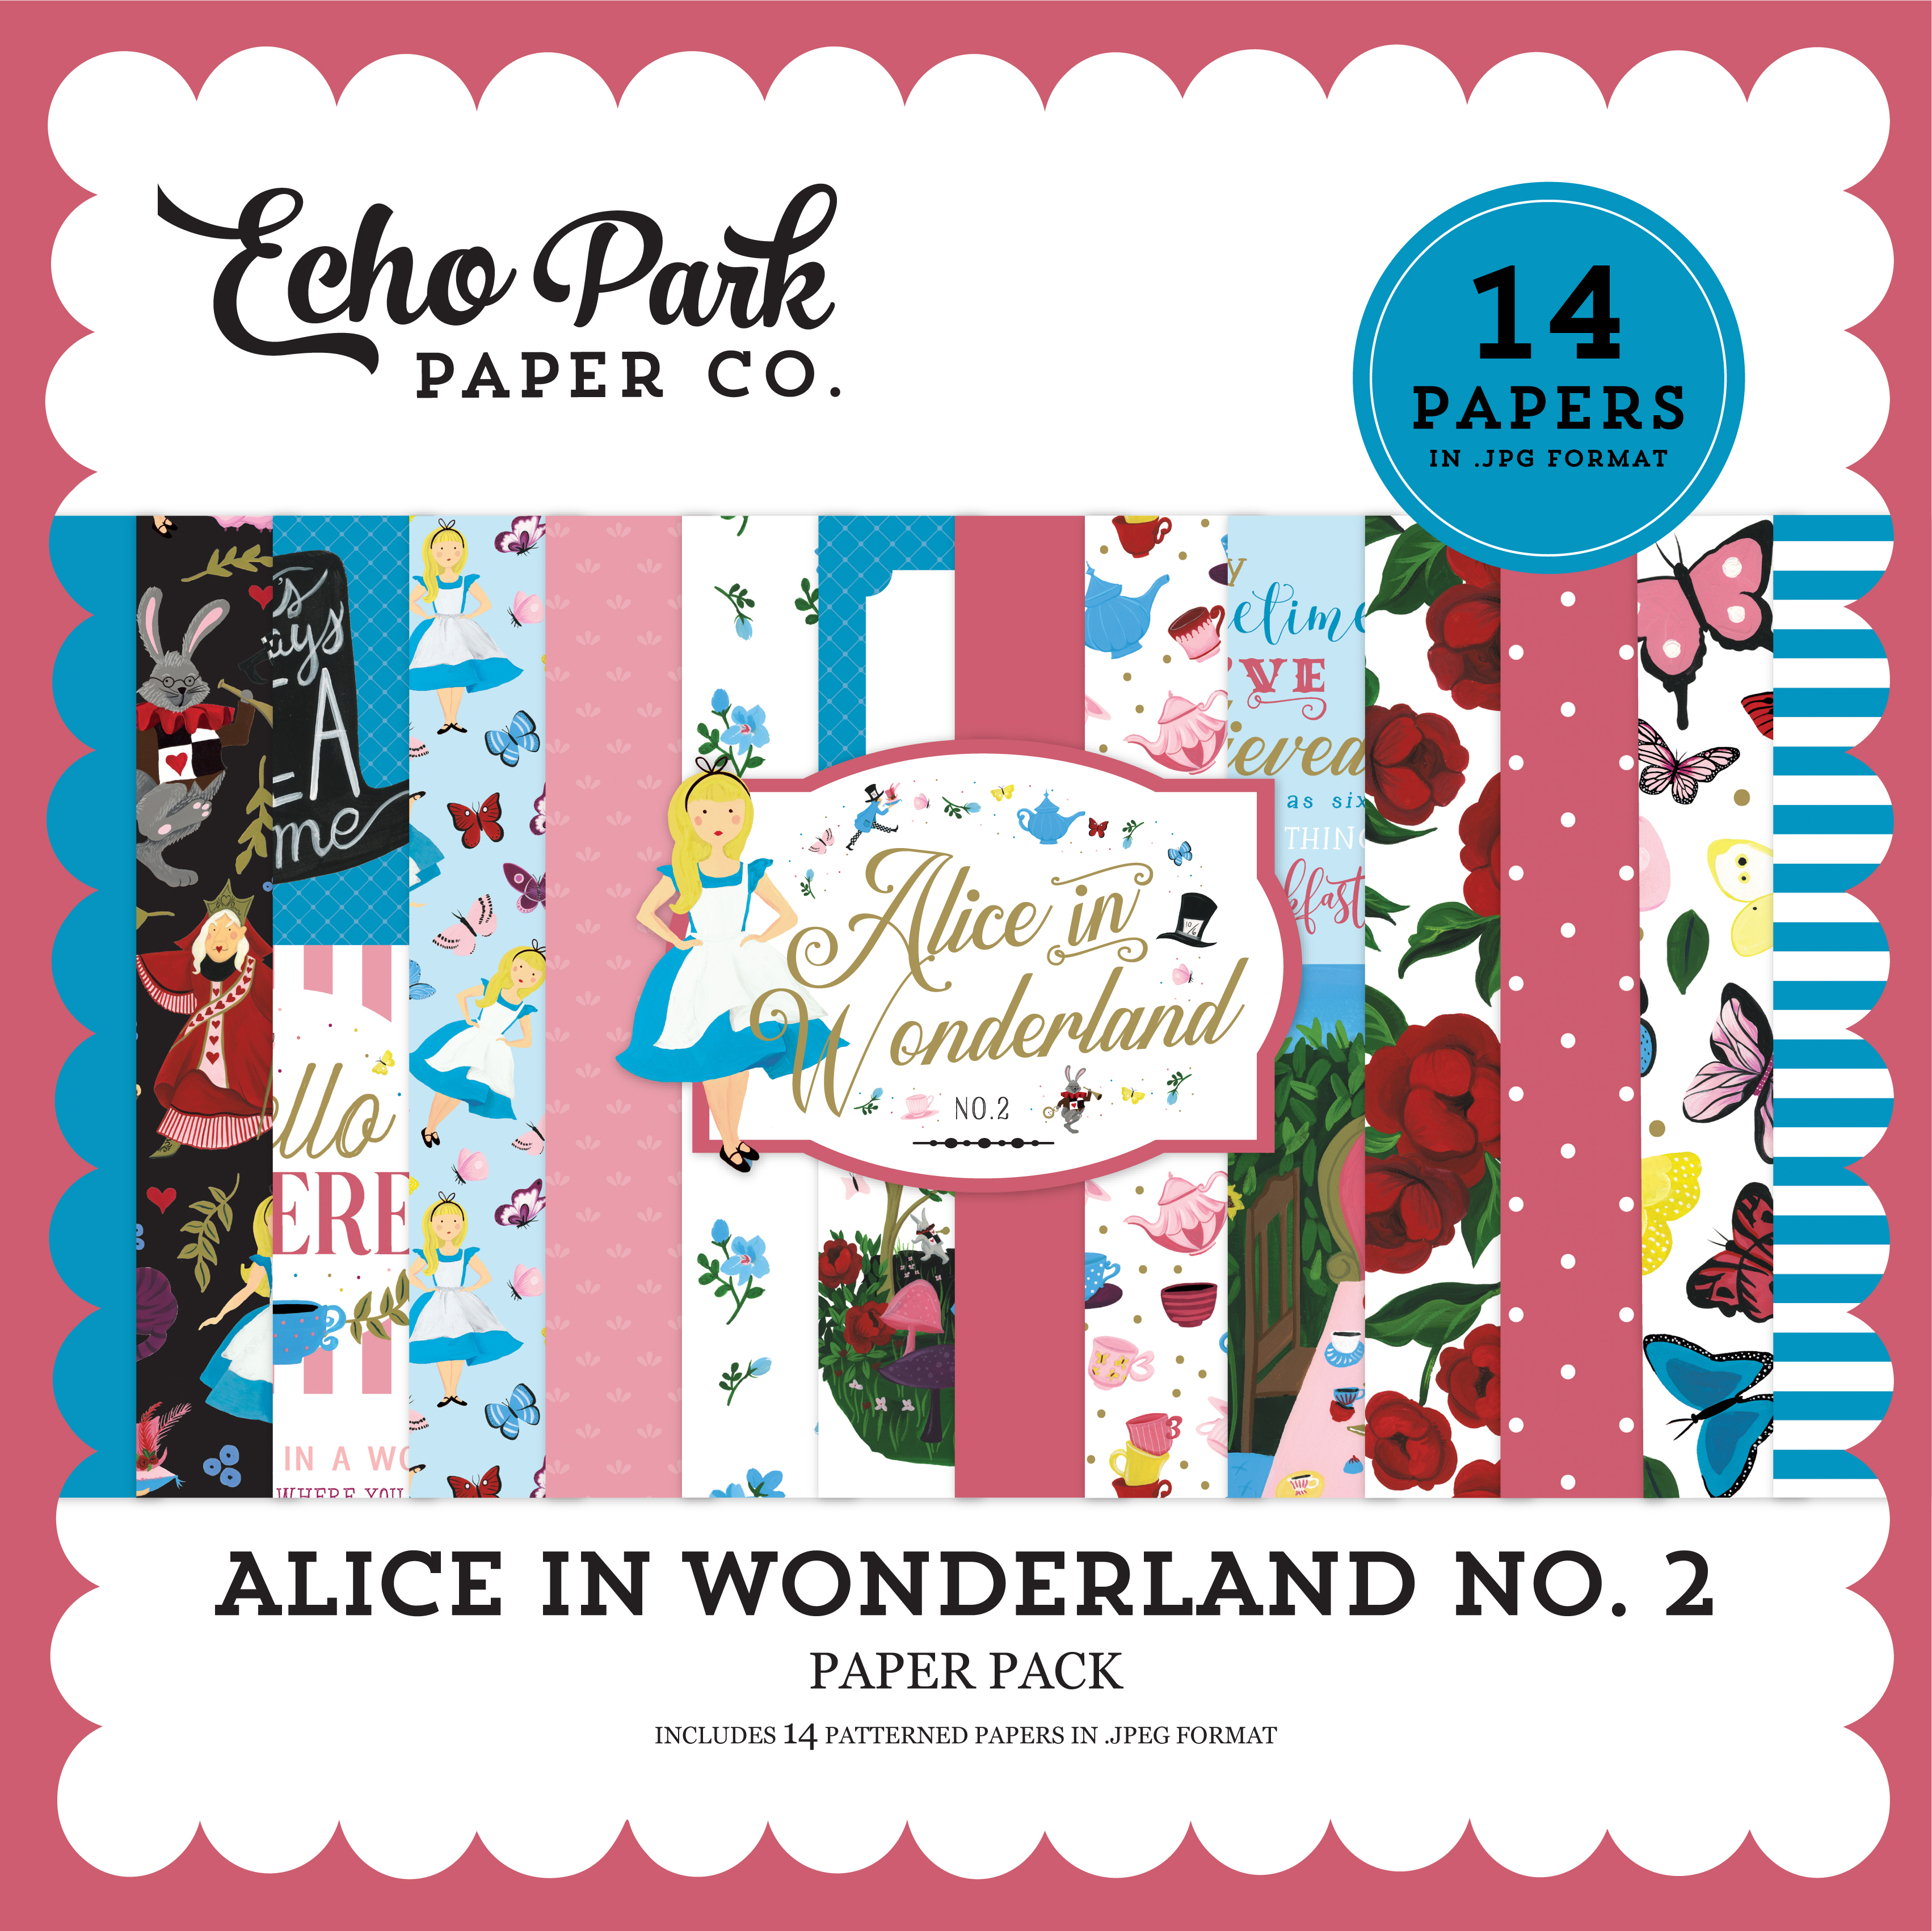 Alice in Wonderland No. 2 Paper Pack